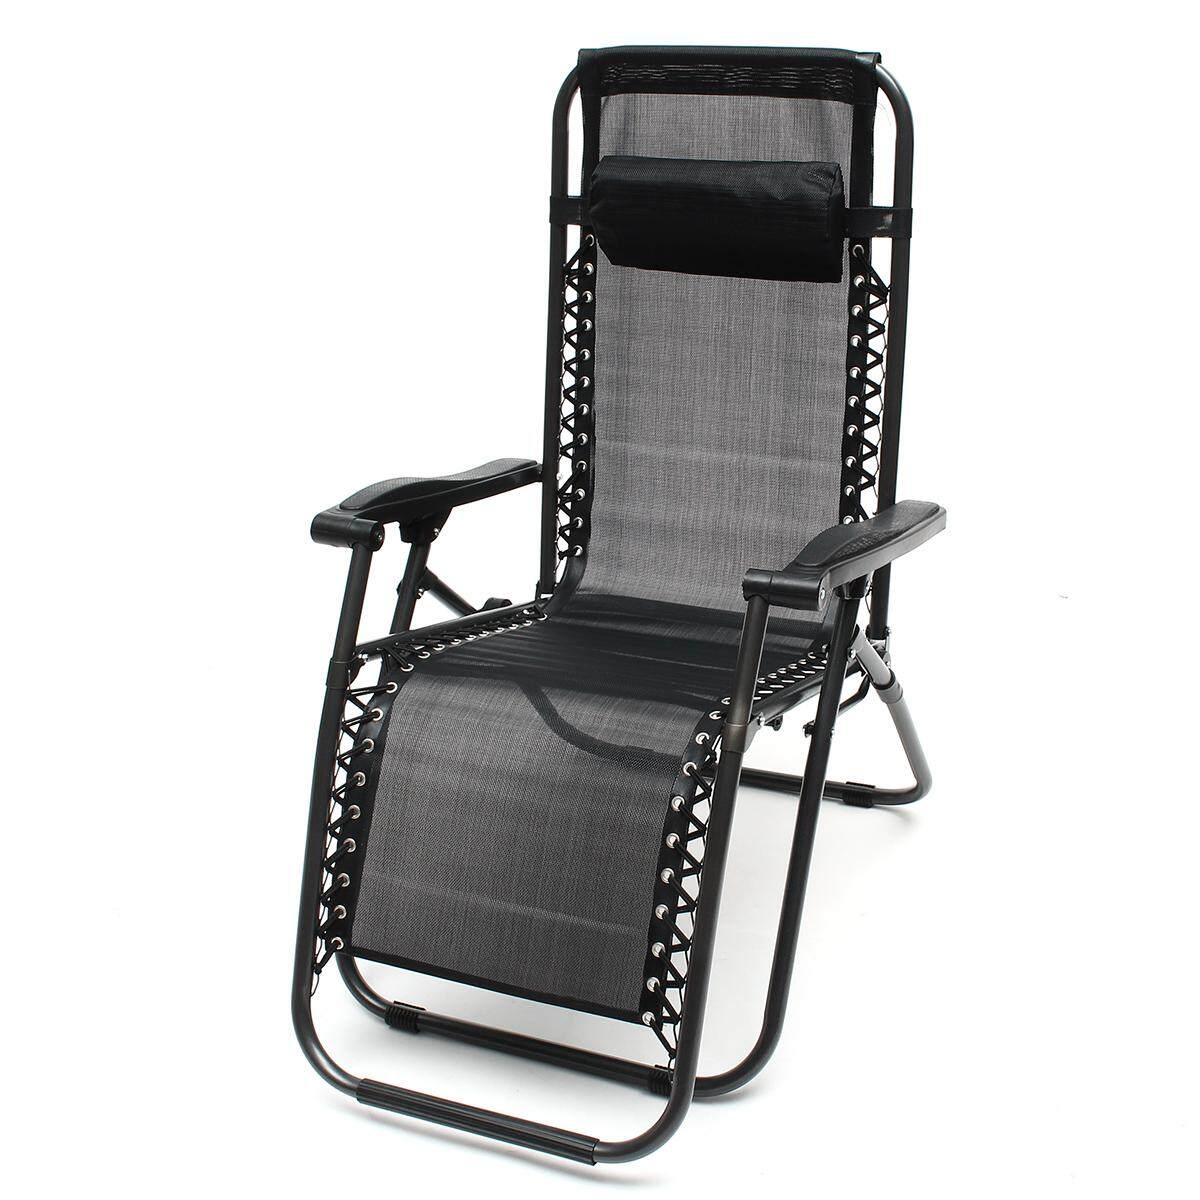 Zero Gravity Portable Reclining Lounge Folding Outdoor Camping Beach Chair Black - intl